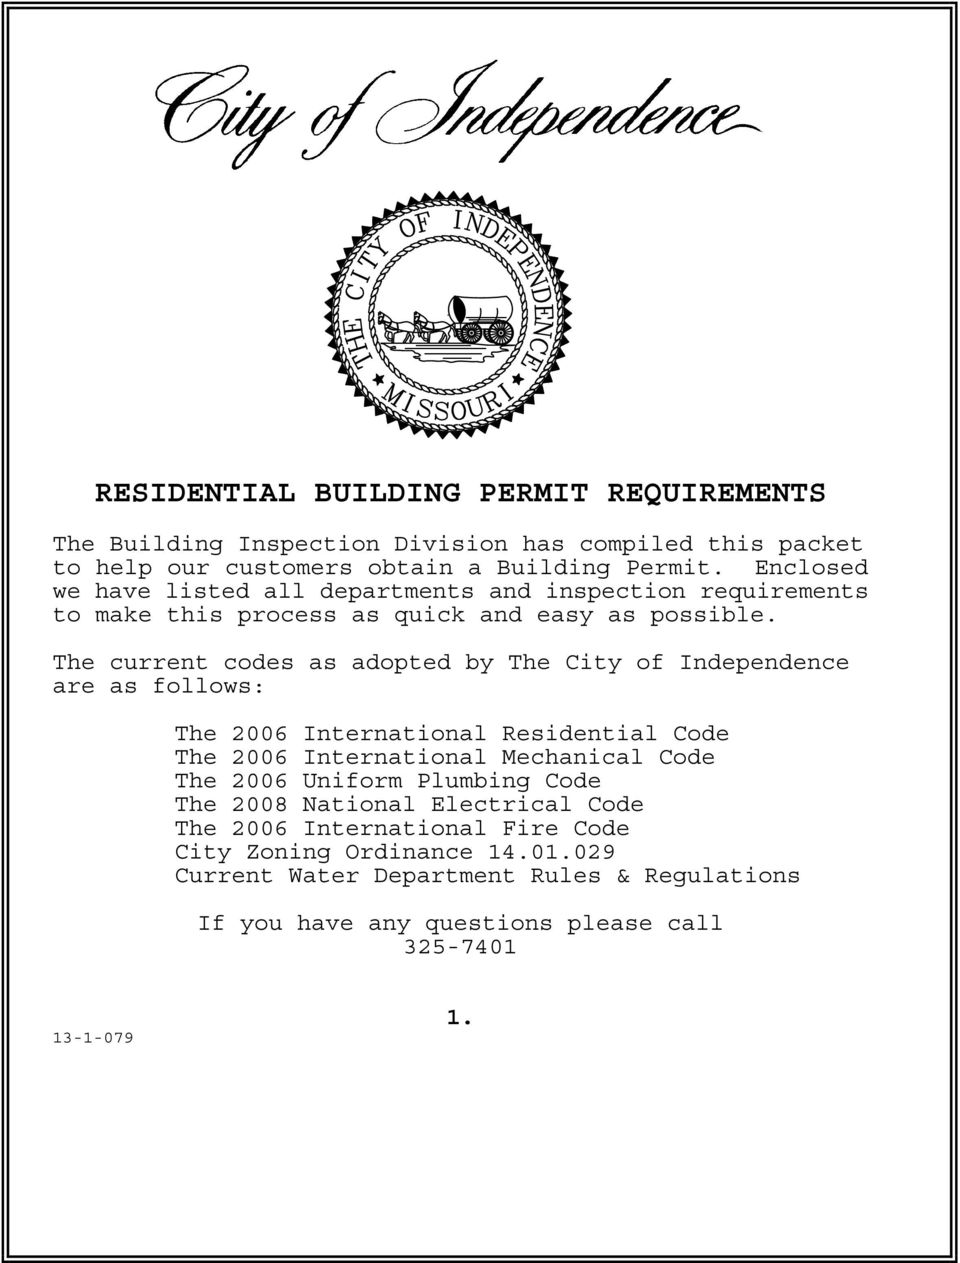 The current codes as adopted by The City of Independence are as follows: The 2006 International Residential Code The 2006 International Mechanical Code The 2006